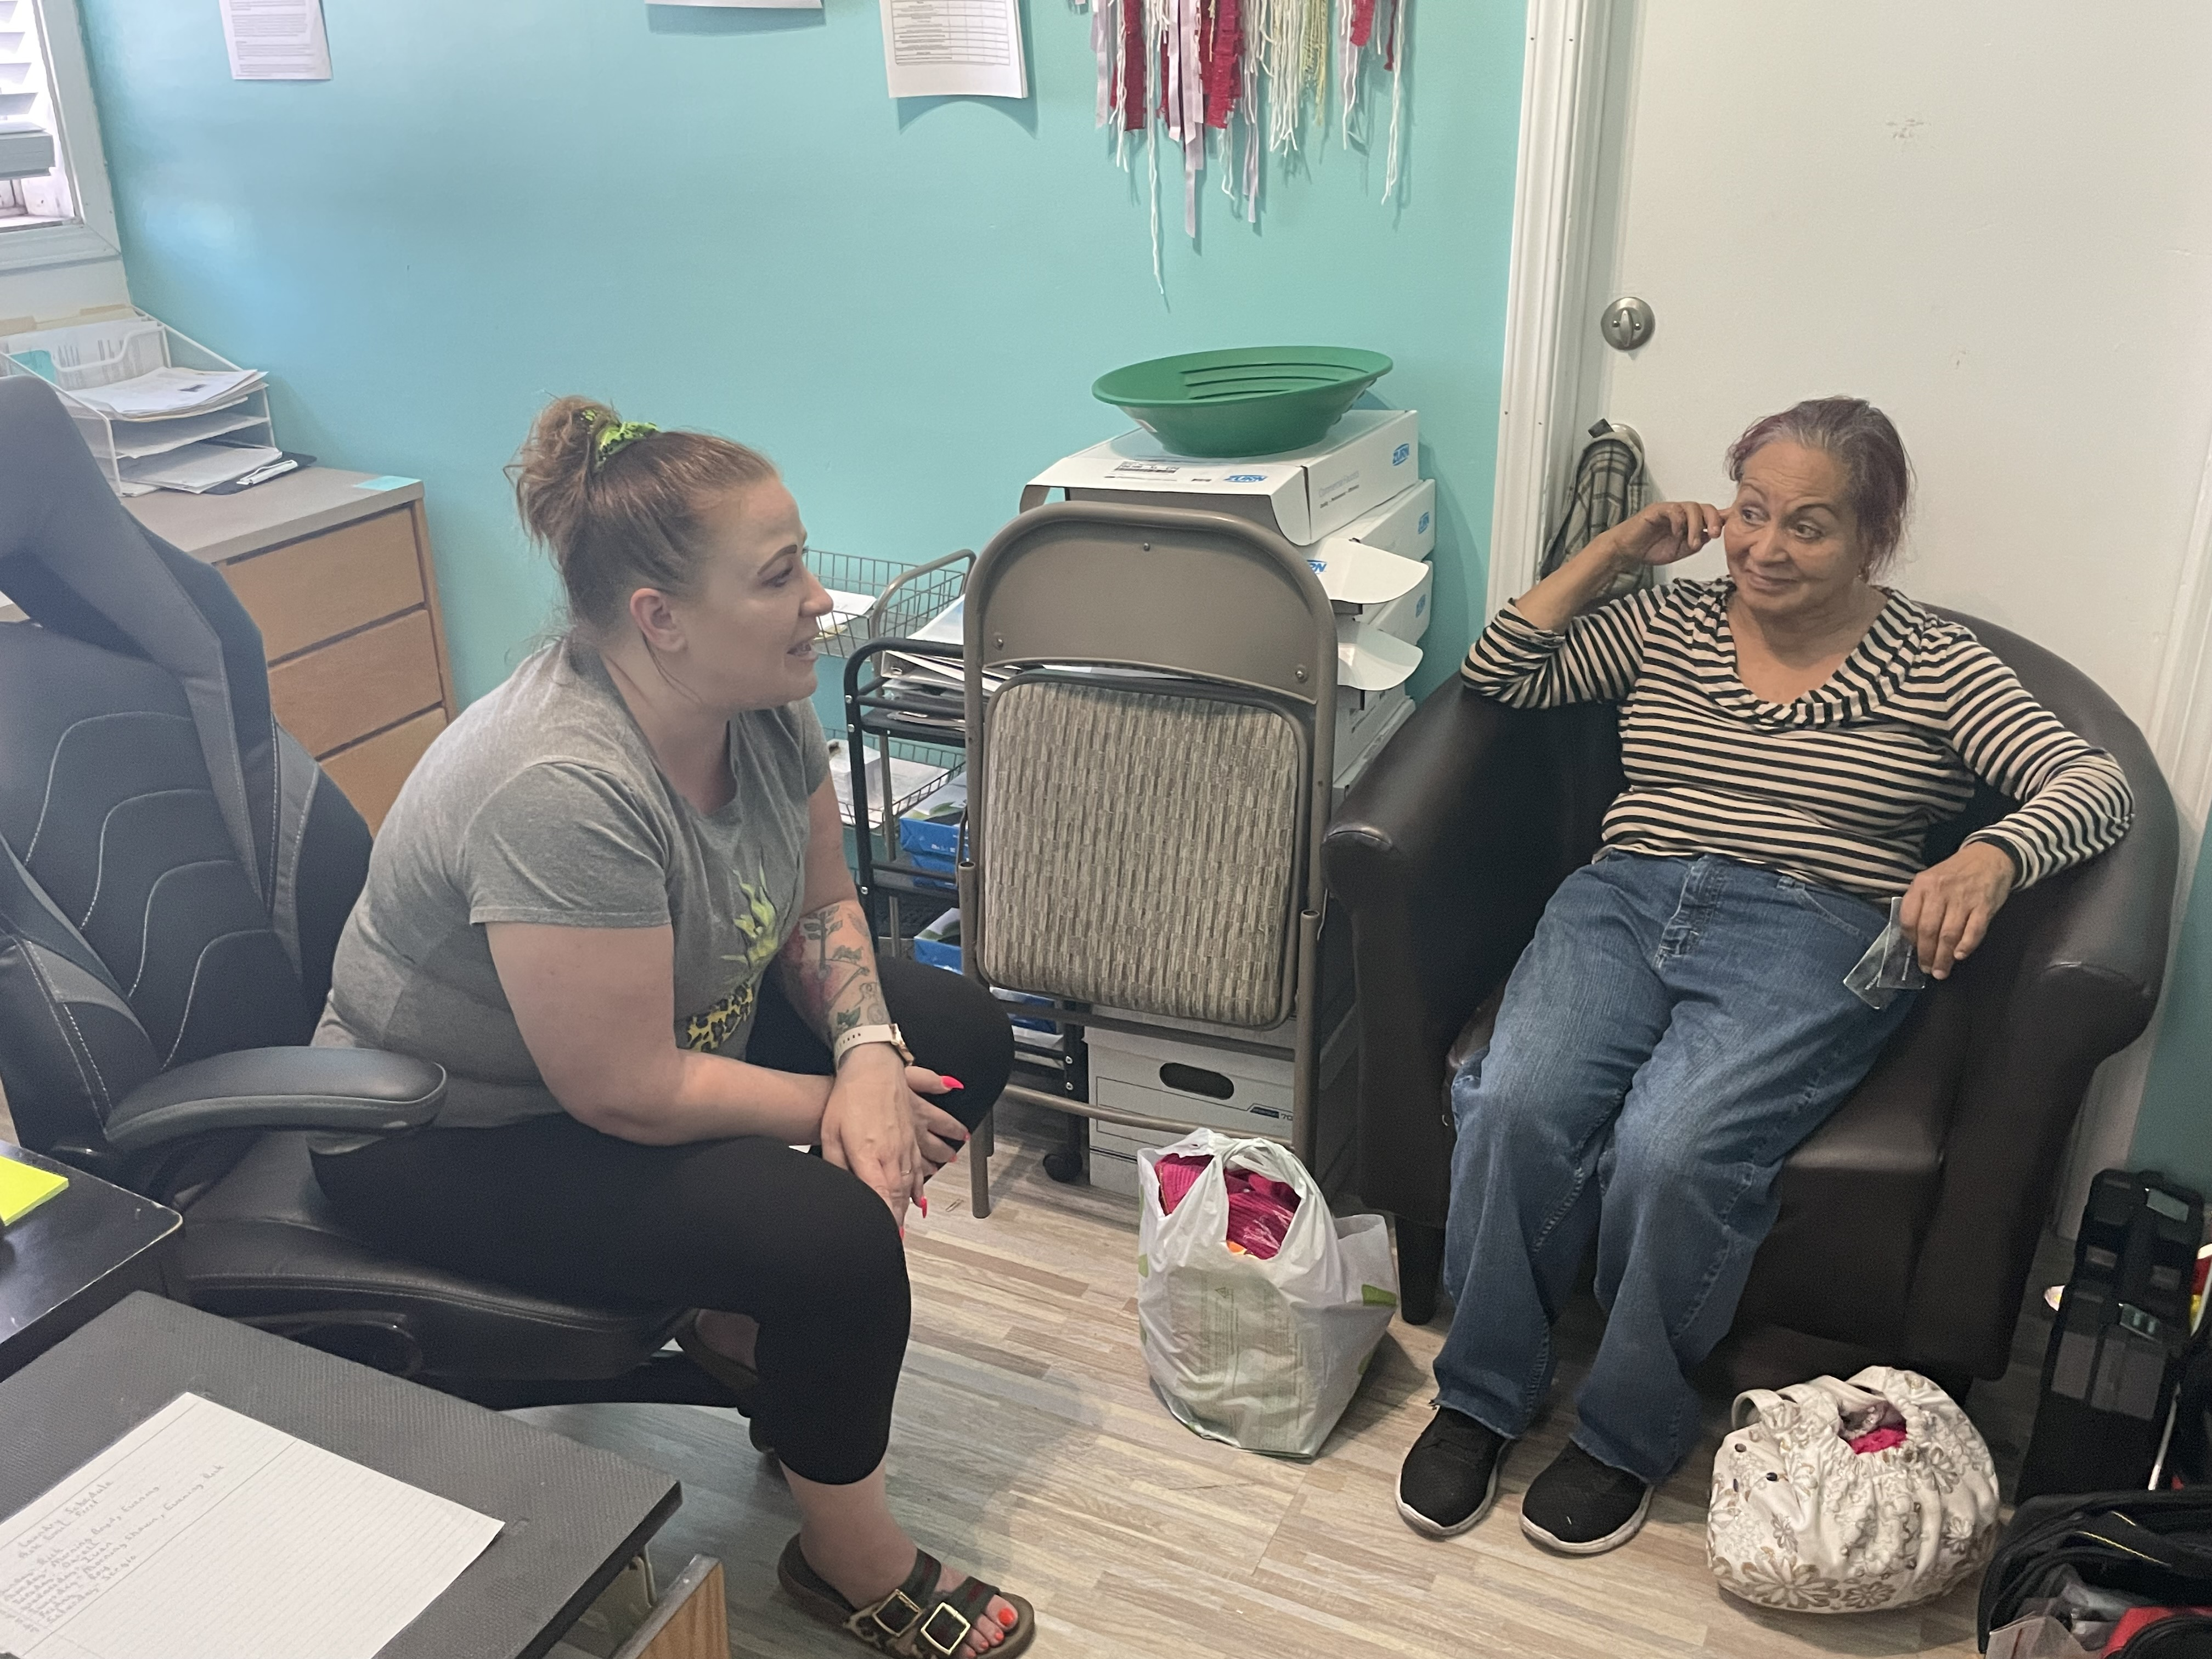 Oroville Rescue Mission opens 24-hour cooling center